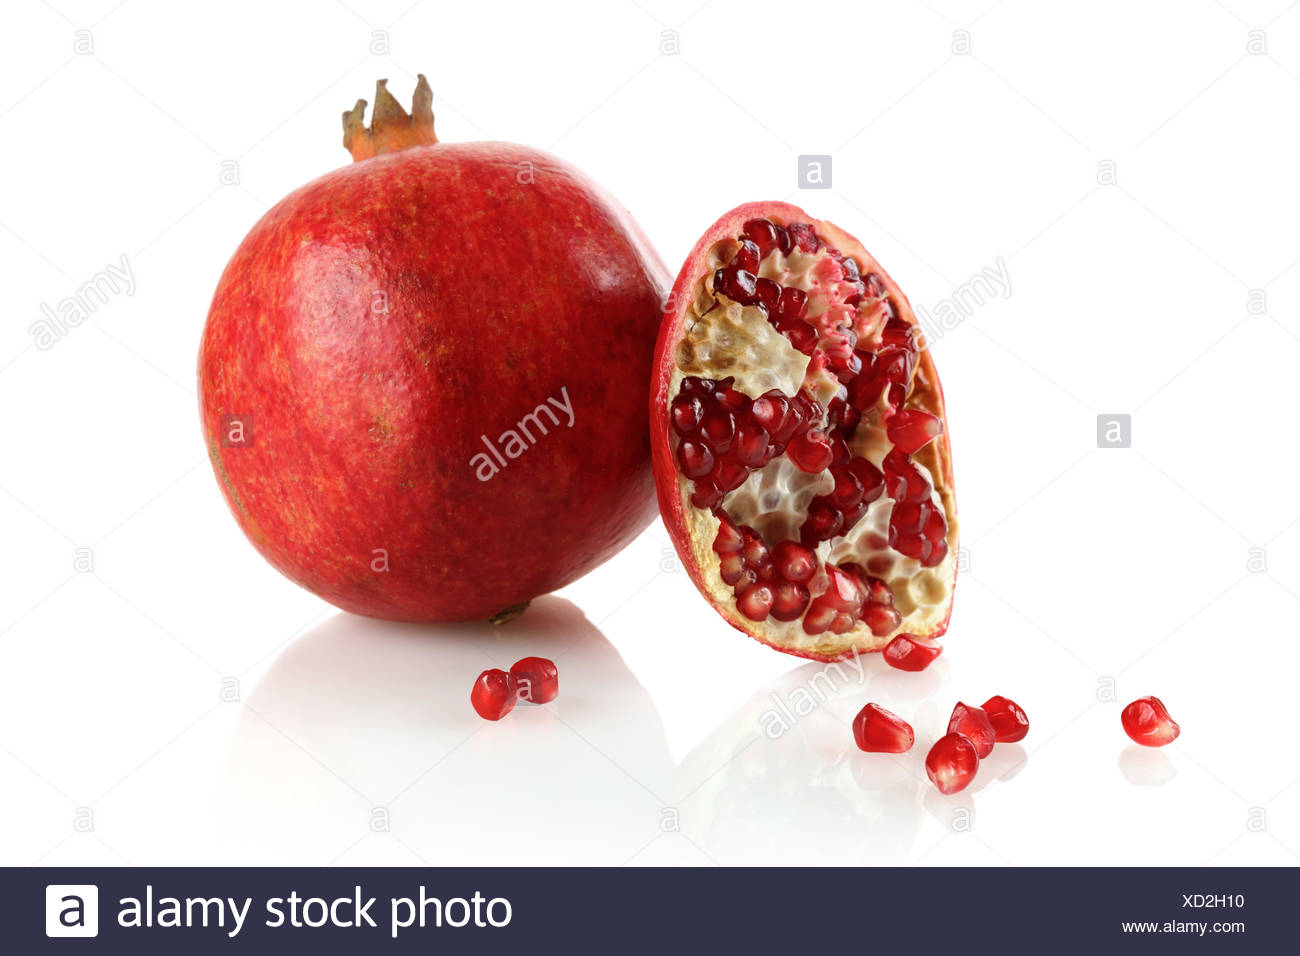 Juicy pomegranate - Stock Image